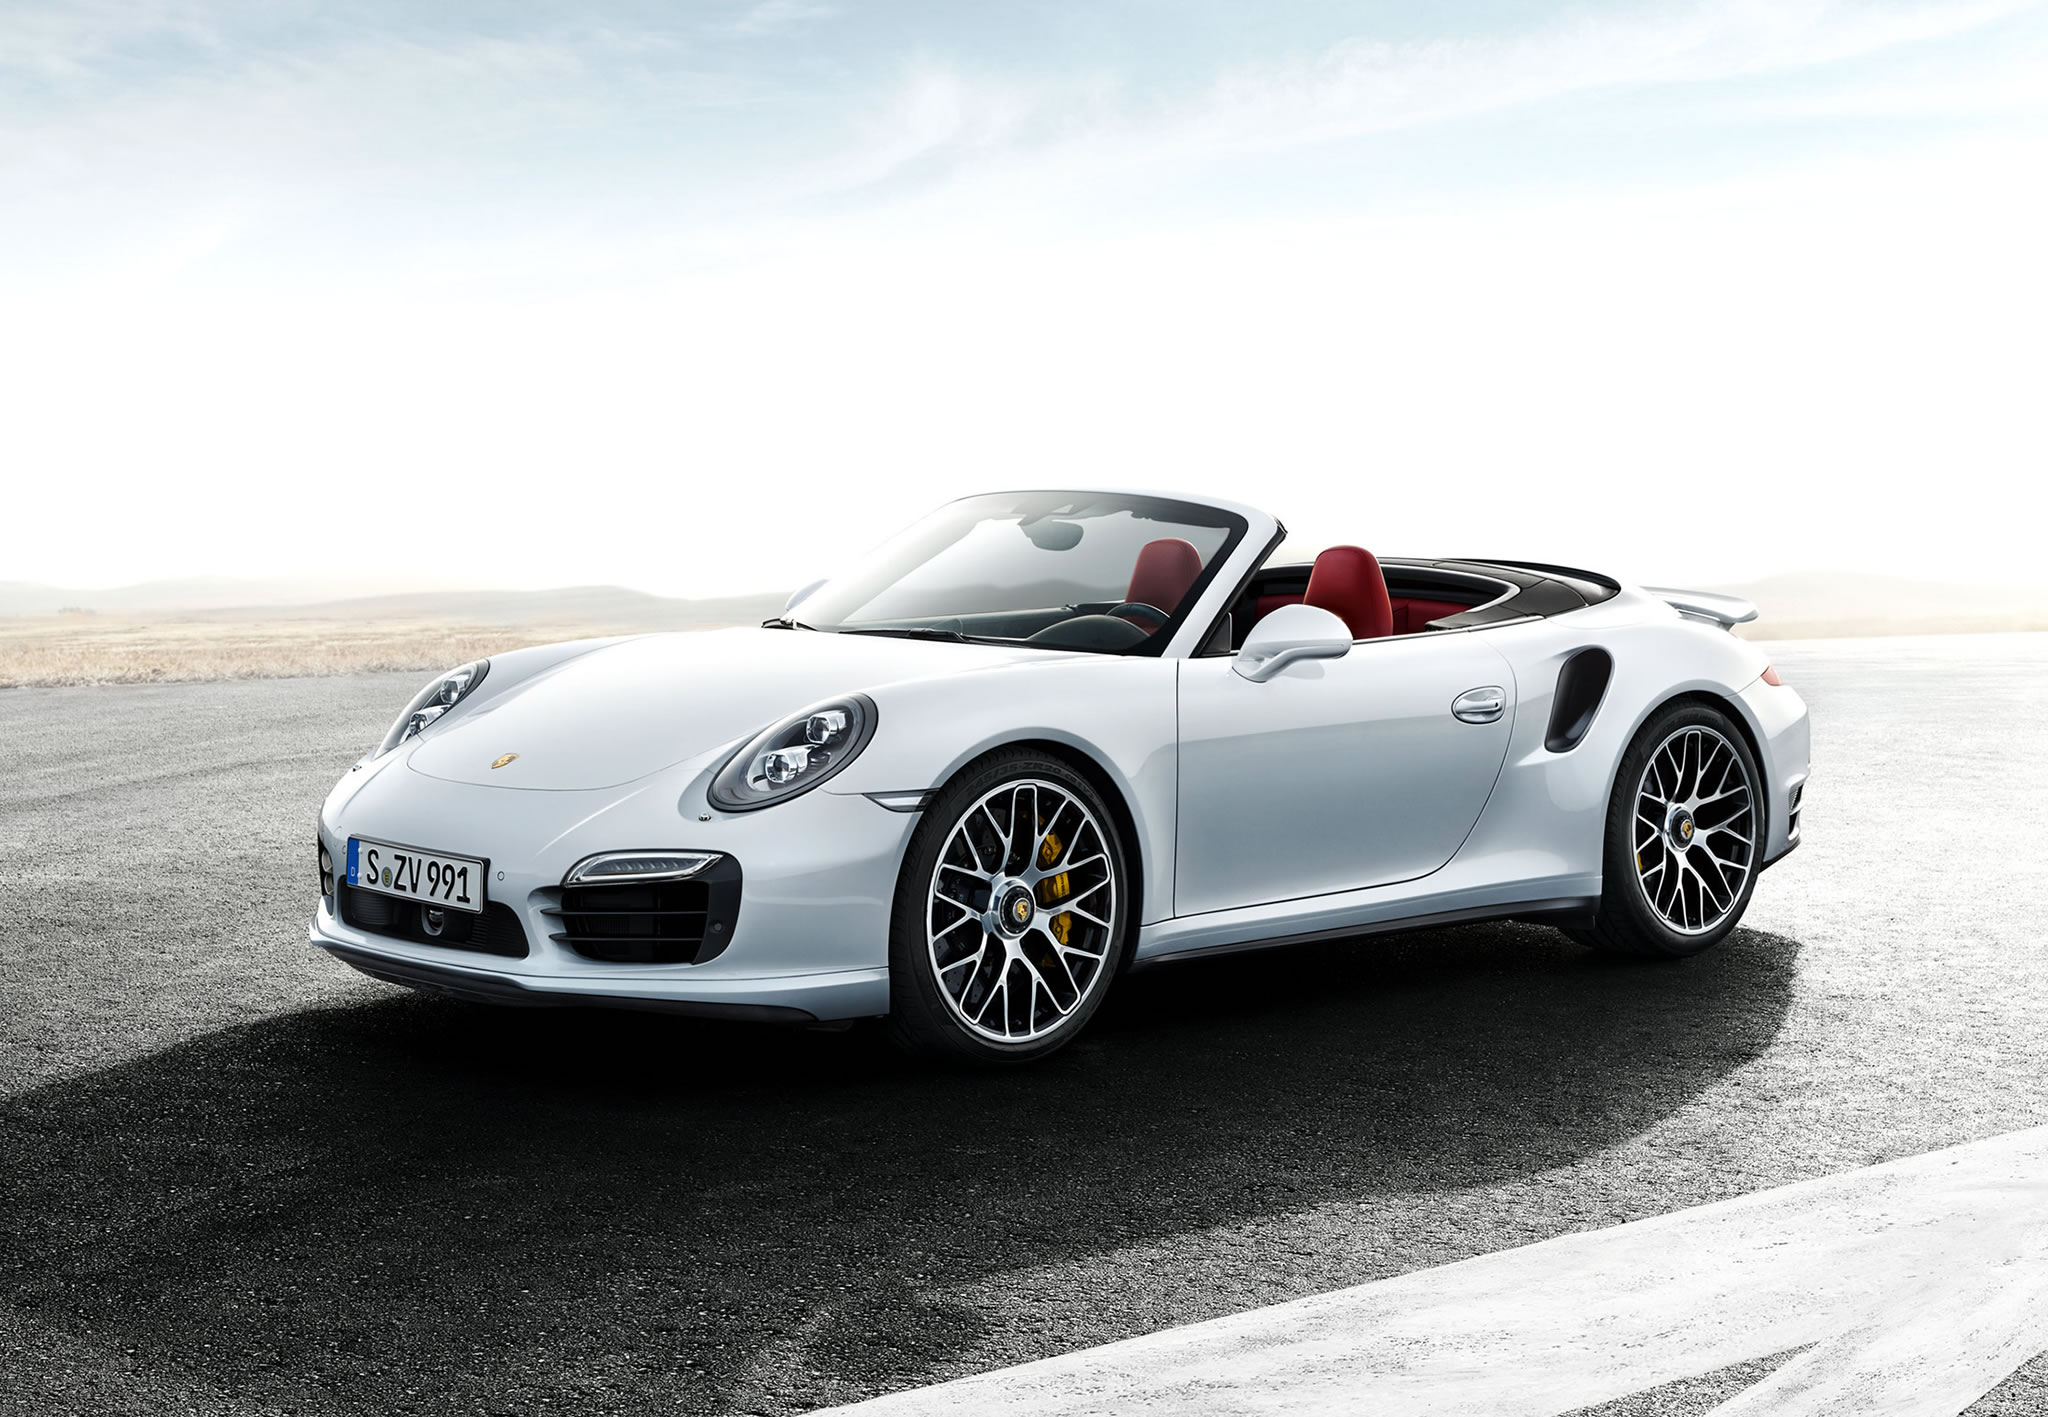 2014 Porsche 911 Turbo S Cabriolet Front Photo Three